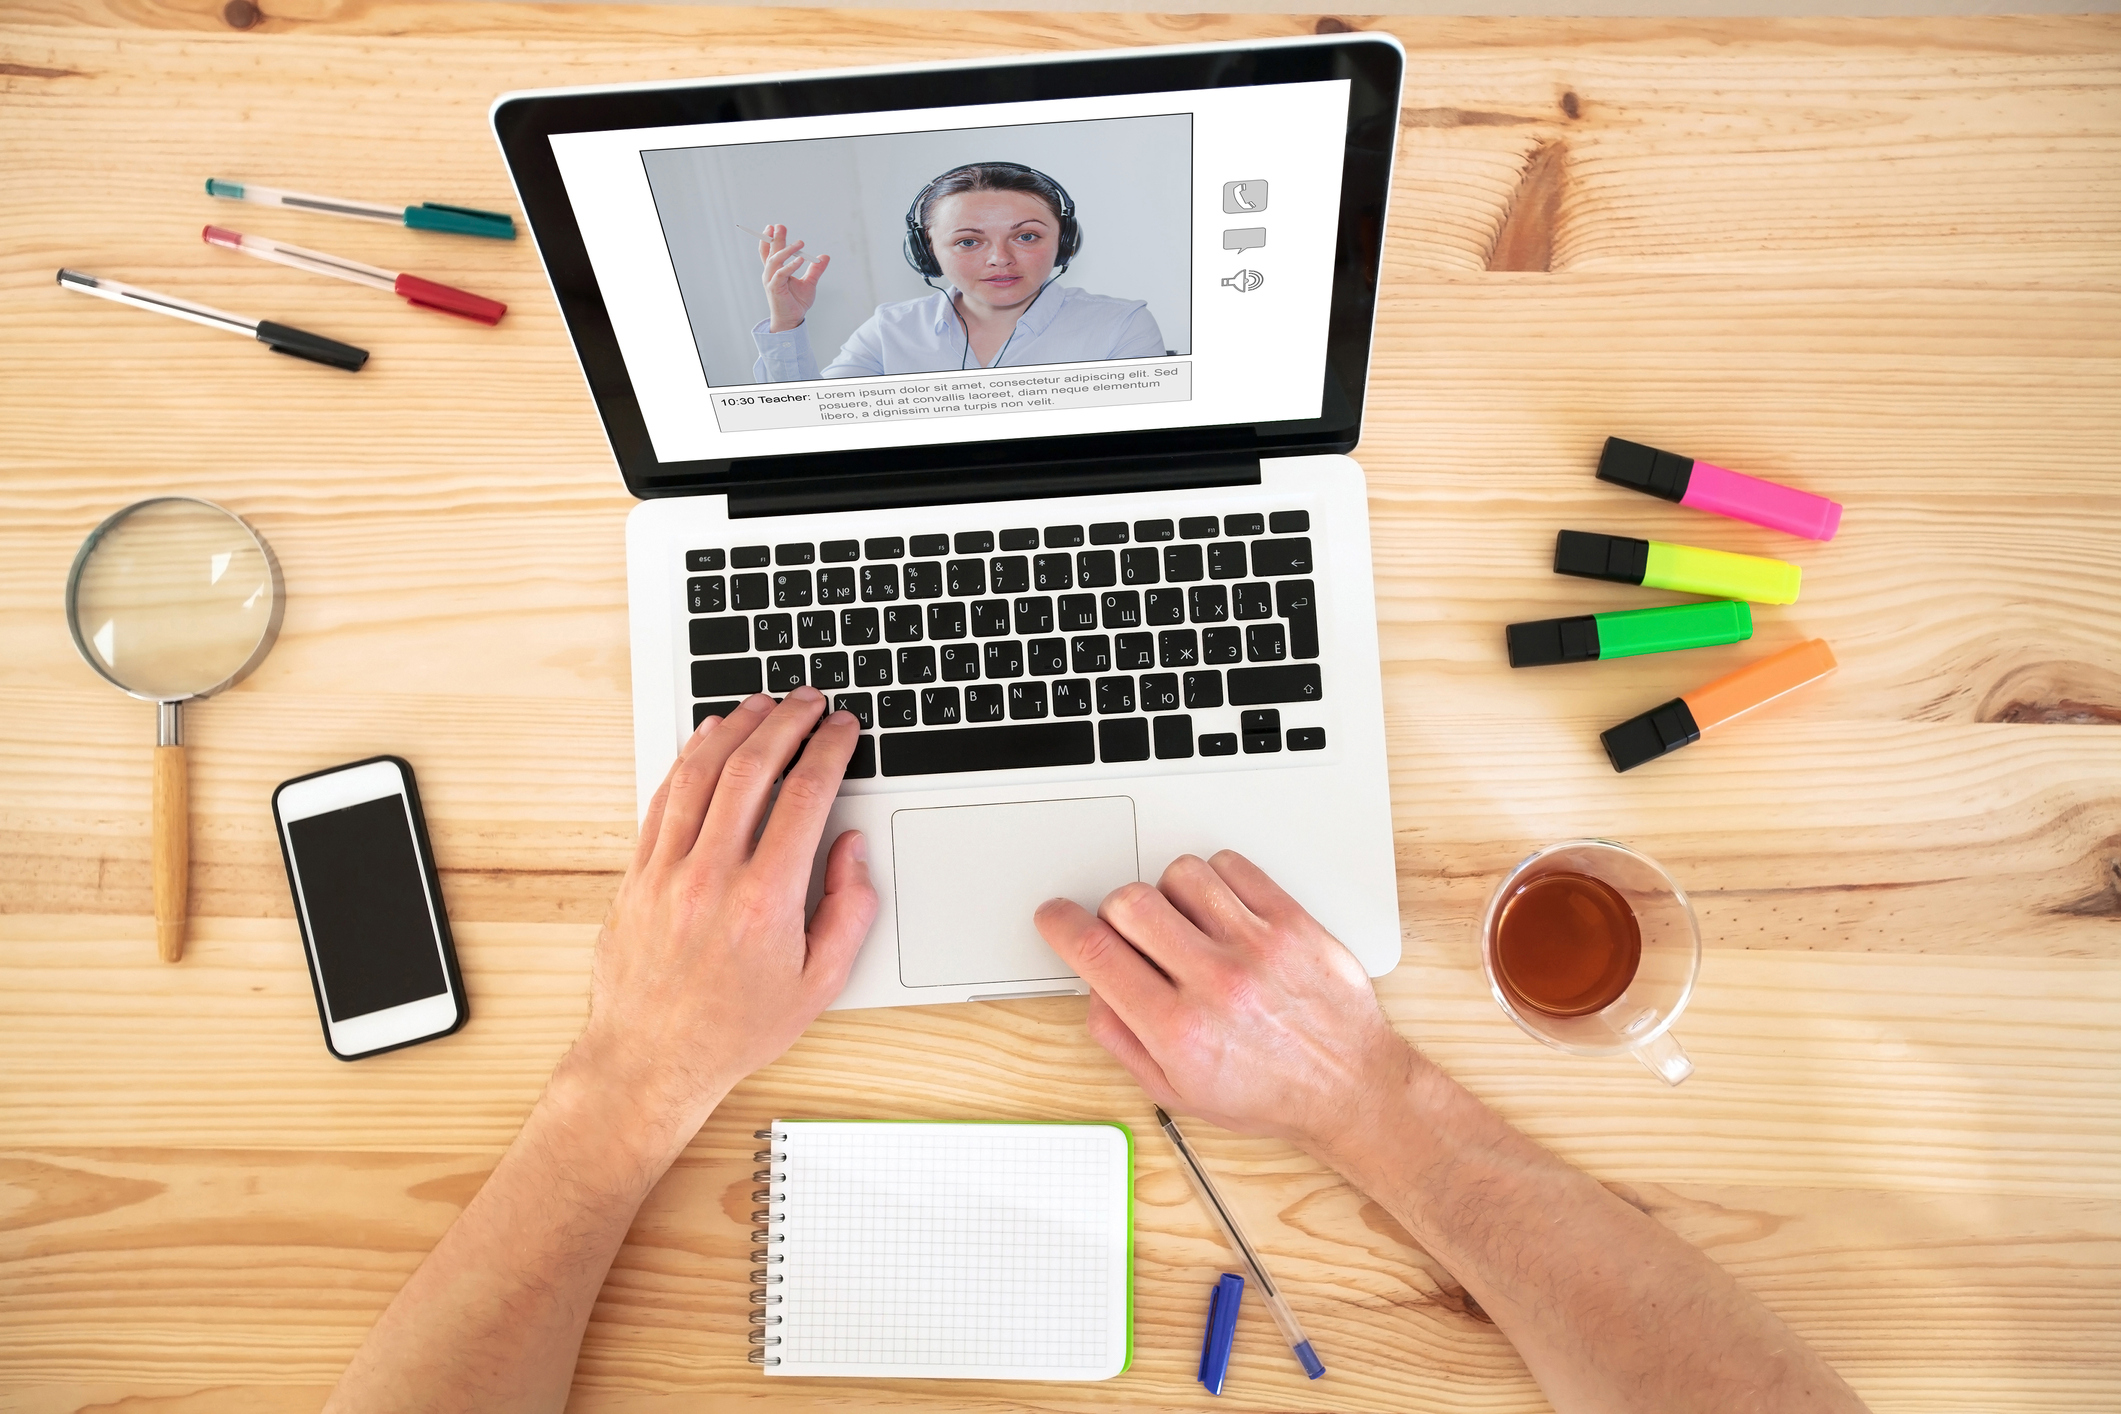 1-1 Online Tuition - Hire an expert to help you with your studies. Great for those who are struggling in a specific subject area and need some 1-1 help. Perfect for those who would like the extra flexibility of online lessons.38 hour boost in annual learning hoursRates from £25 per session